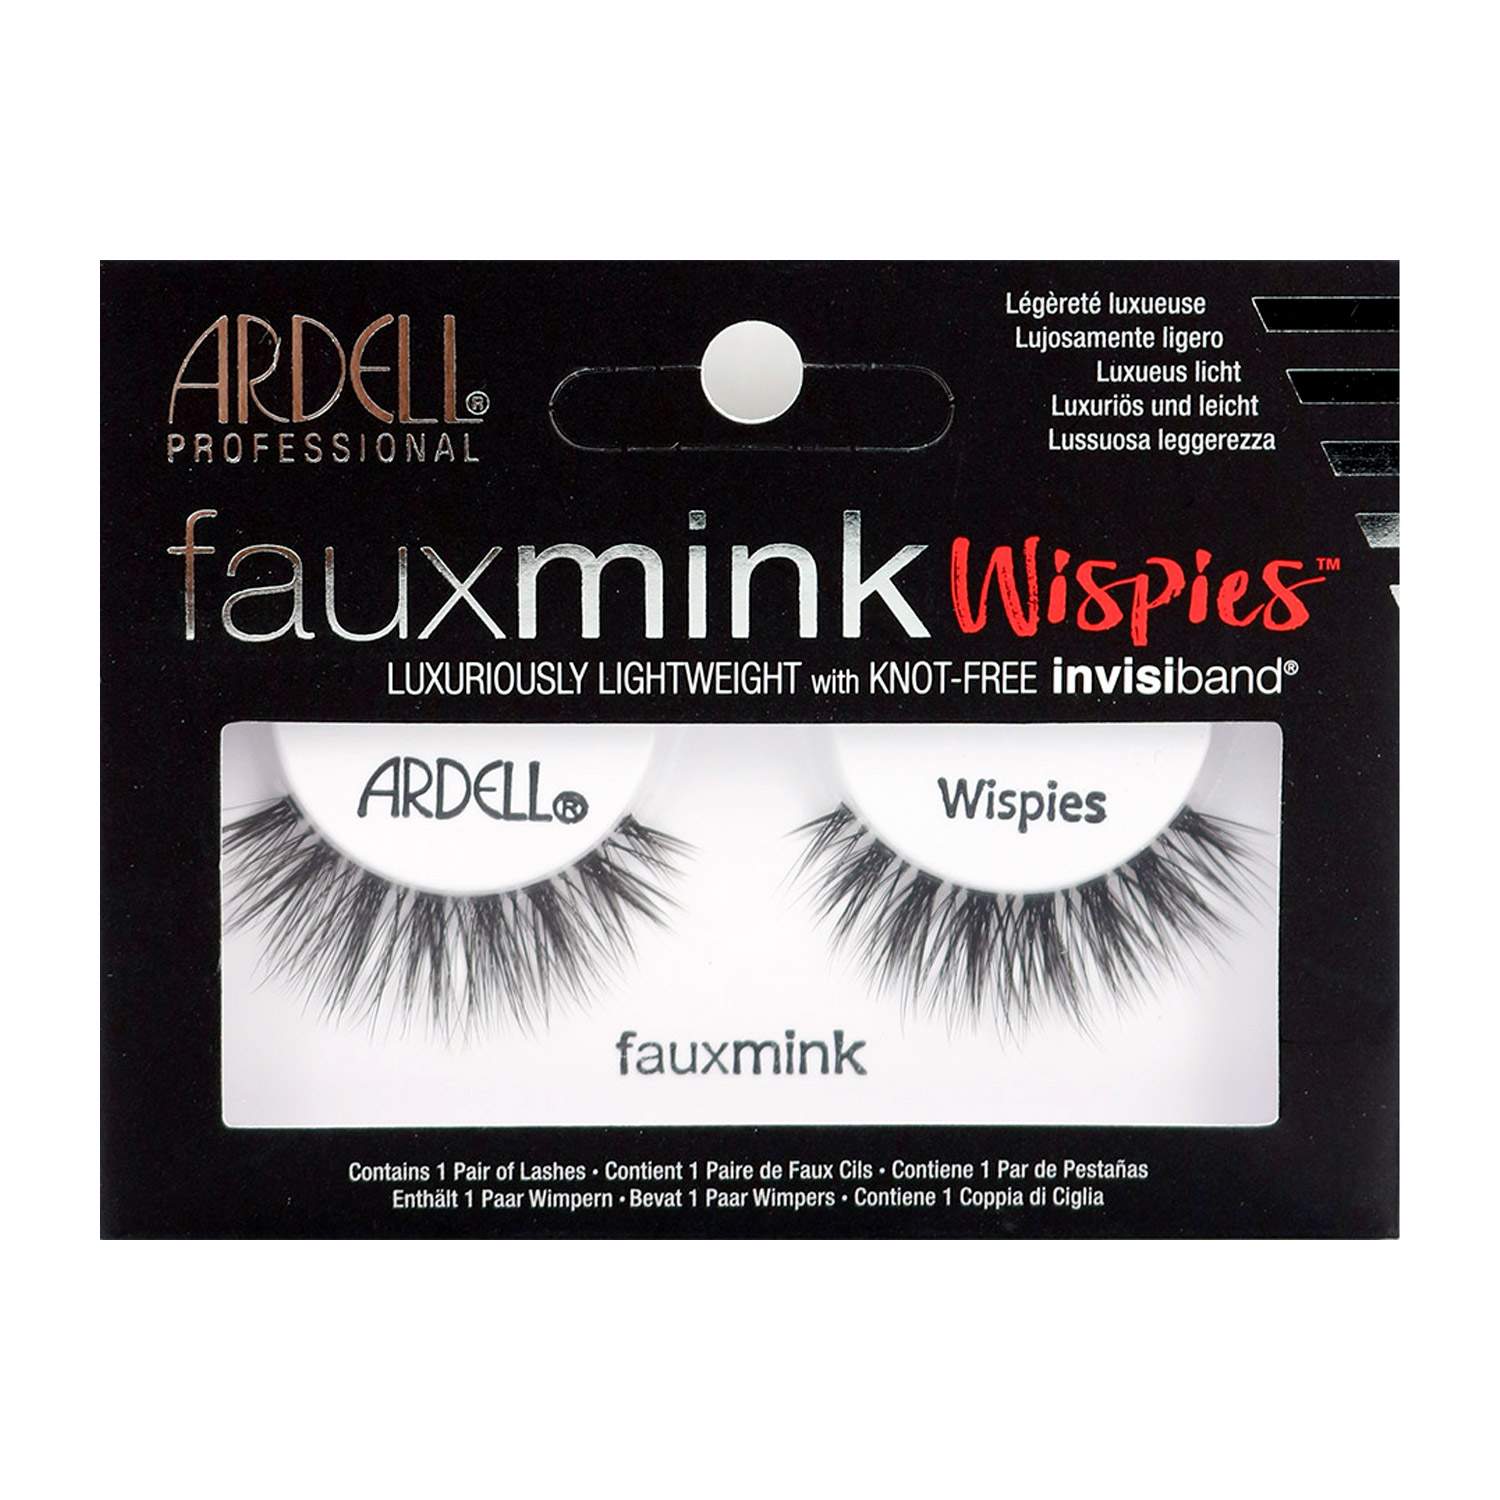 0881c4f1083 ARDELL Fauxmink Luxuriously Lightweight with Invisiband